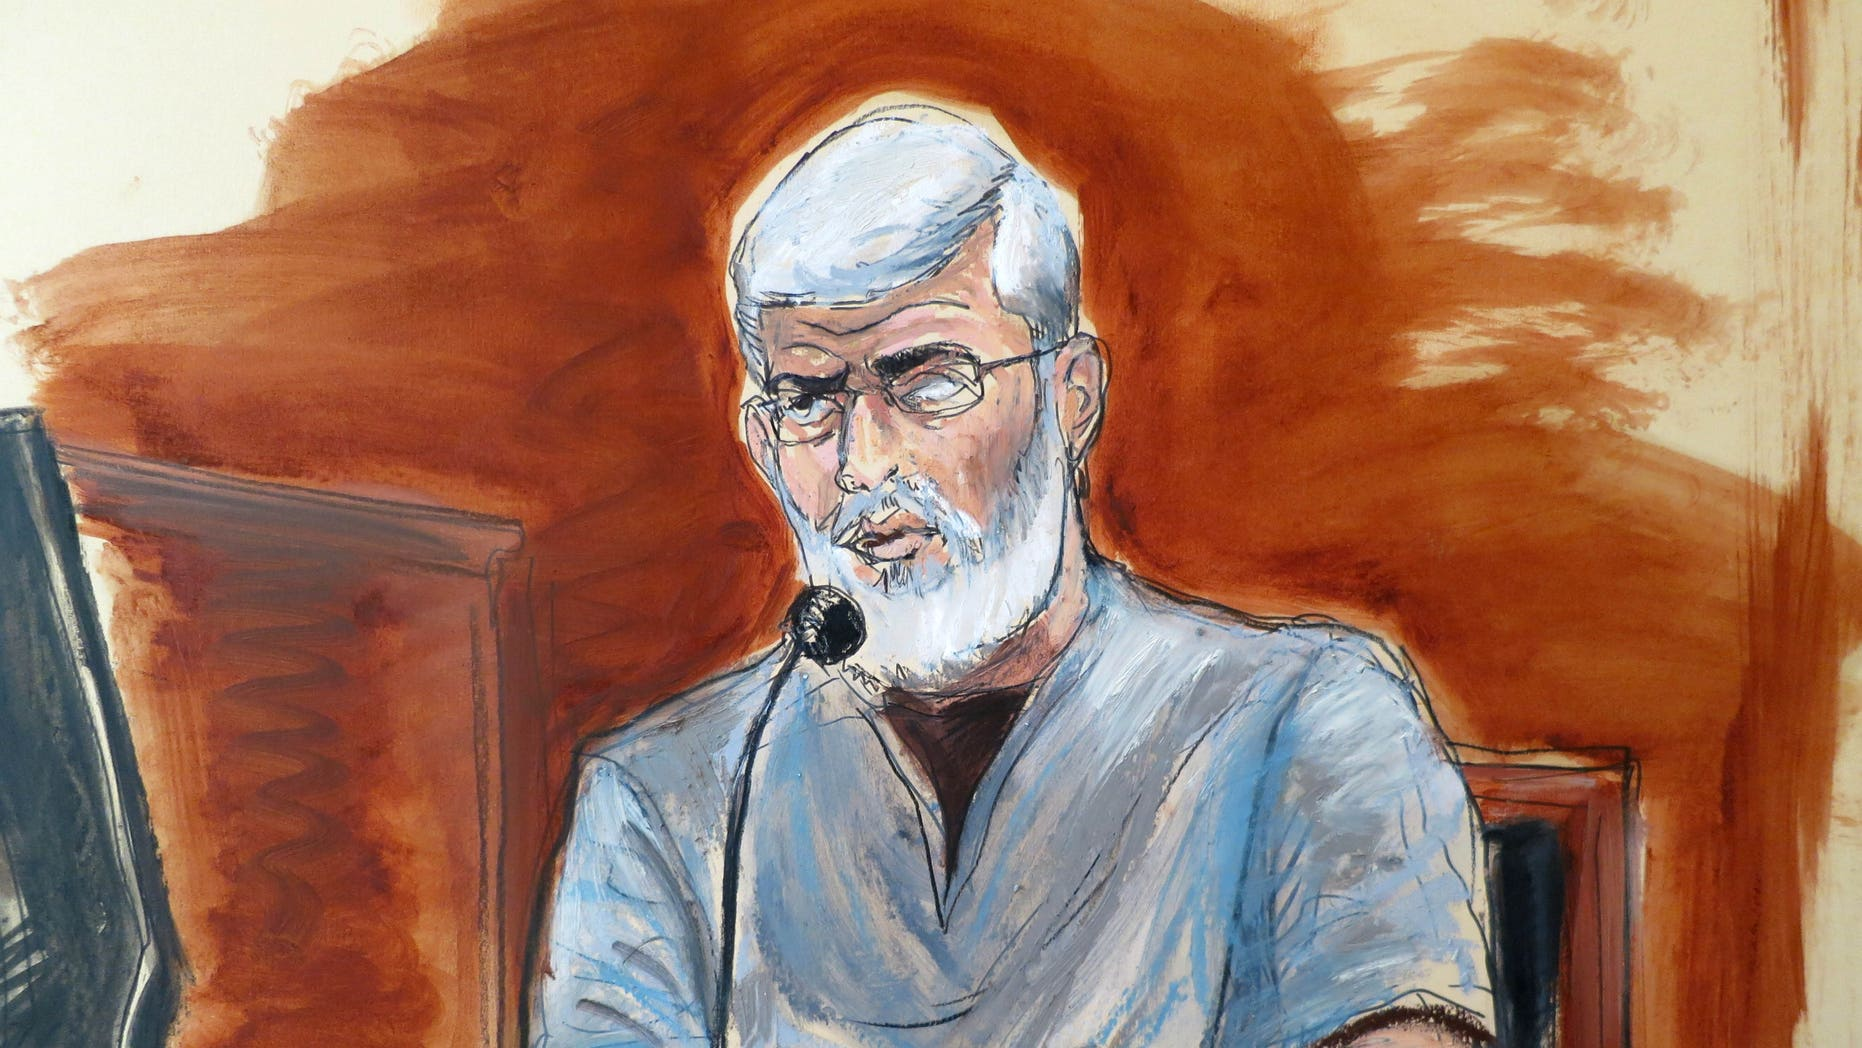 May 7, 2014 - Courtroom sketch of Mustafa Kamel Mustafa, testifying  in his own defense at federal court in New York. Egyptian cleric known for incendiary rhetoric at a London mosque denied supporting terrorism in testimony at his Manhattan trial, saying he would give up freedom if the price was dignity and beliefs.